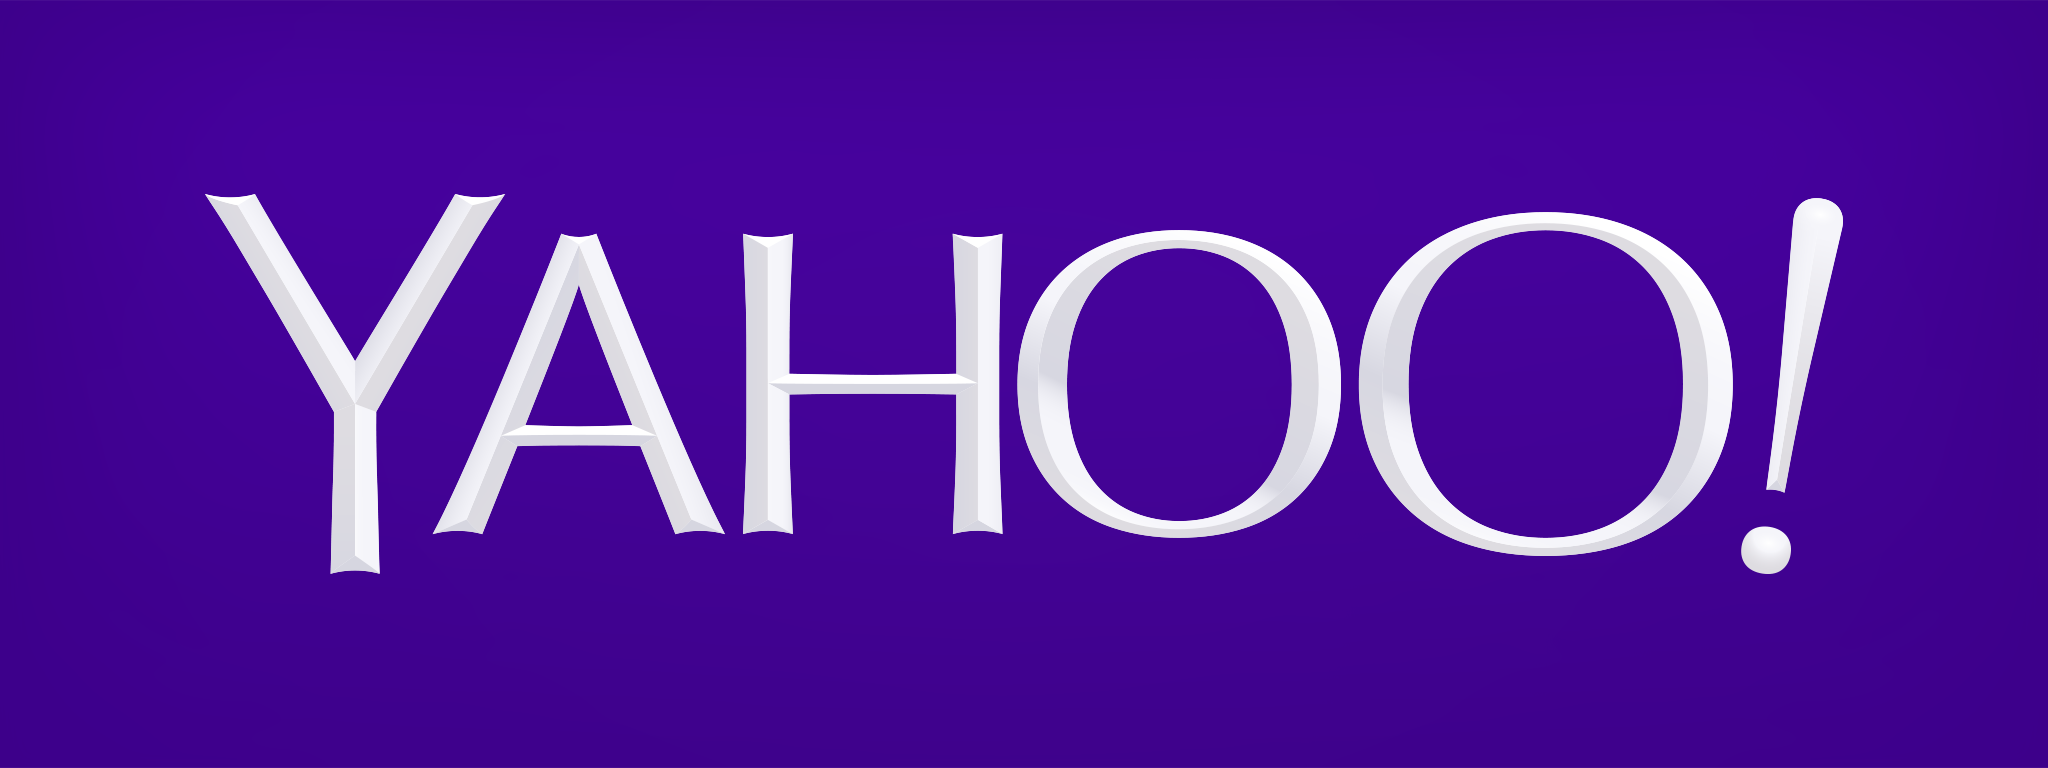 Yahoo_Logo_Purple.png - Yahoo Old Vector, Transparent background PNG HD thumbnail